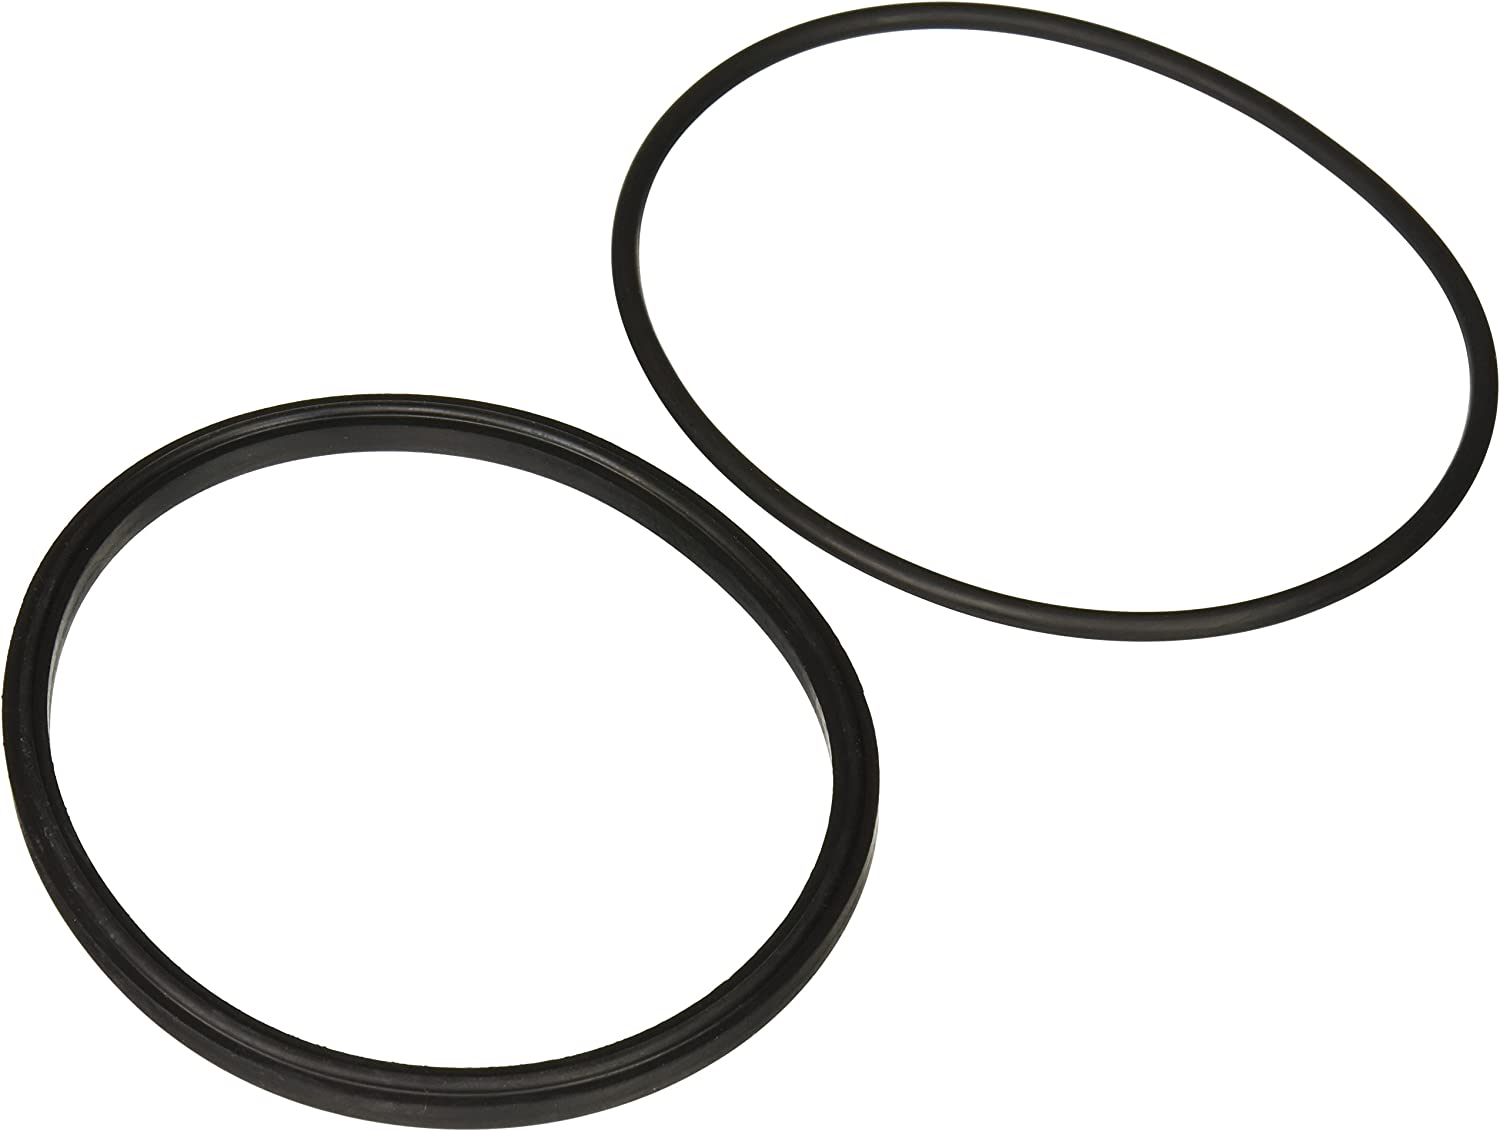 Zodiac R0449100 Lid Seal with O-Ring Replacement Kit for Select Zodiac Jandy Pool and Spa Pumps